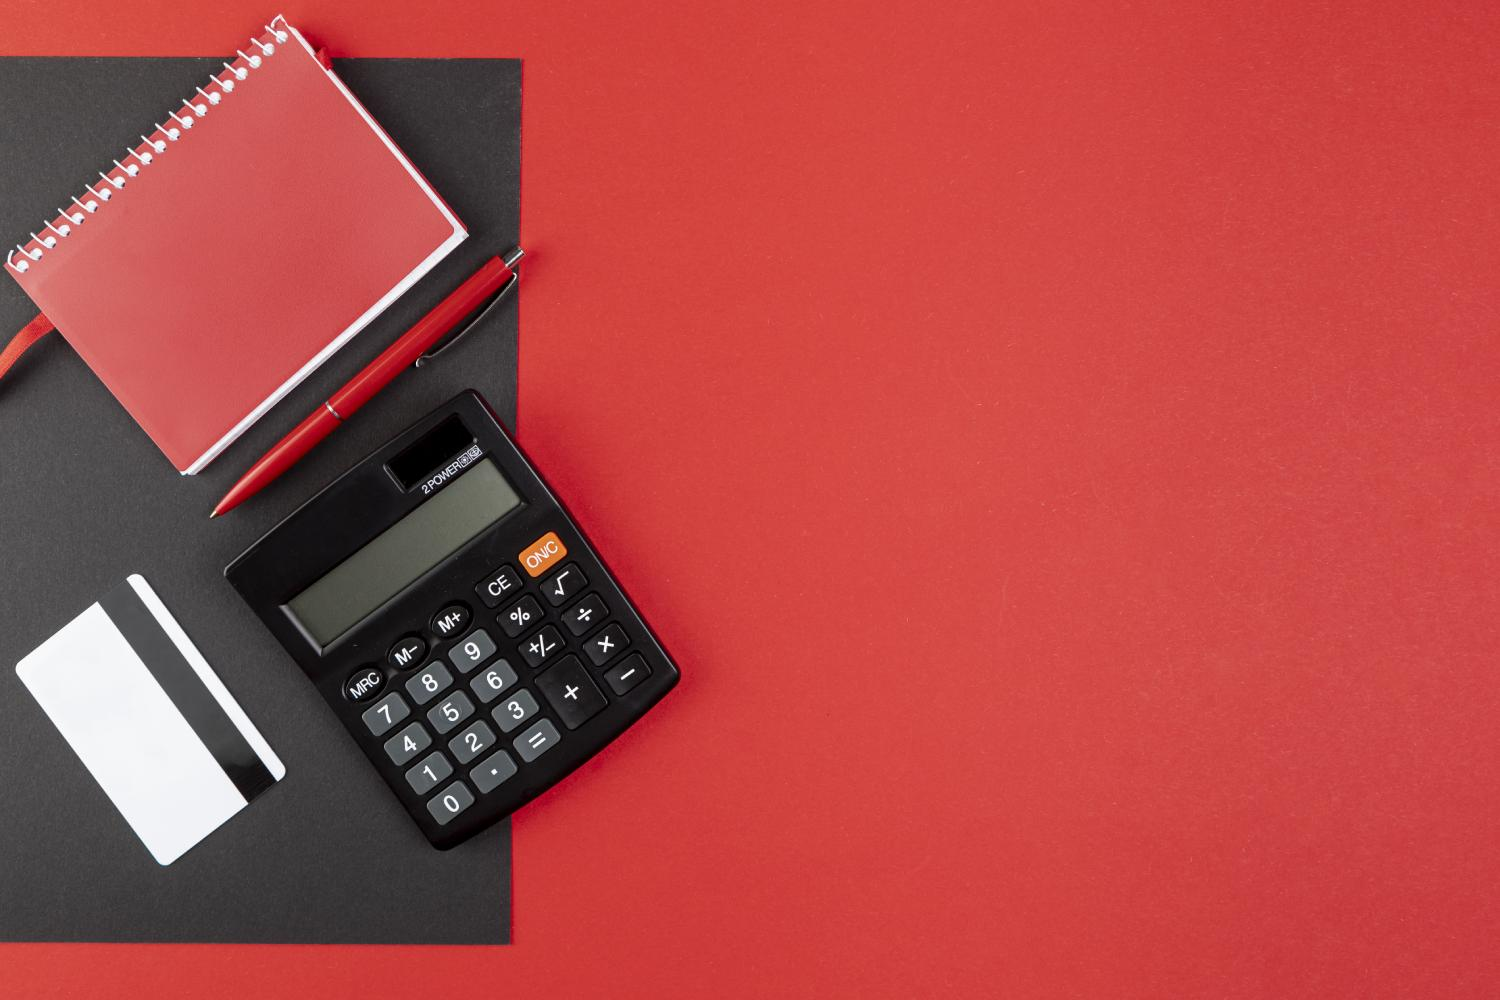 Calculator, credit card, and a writing pad on red background